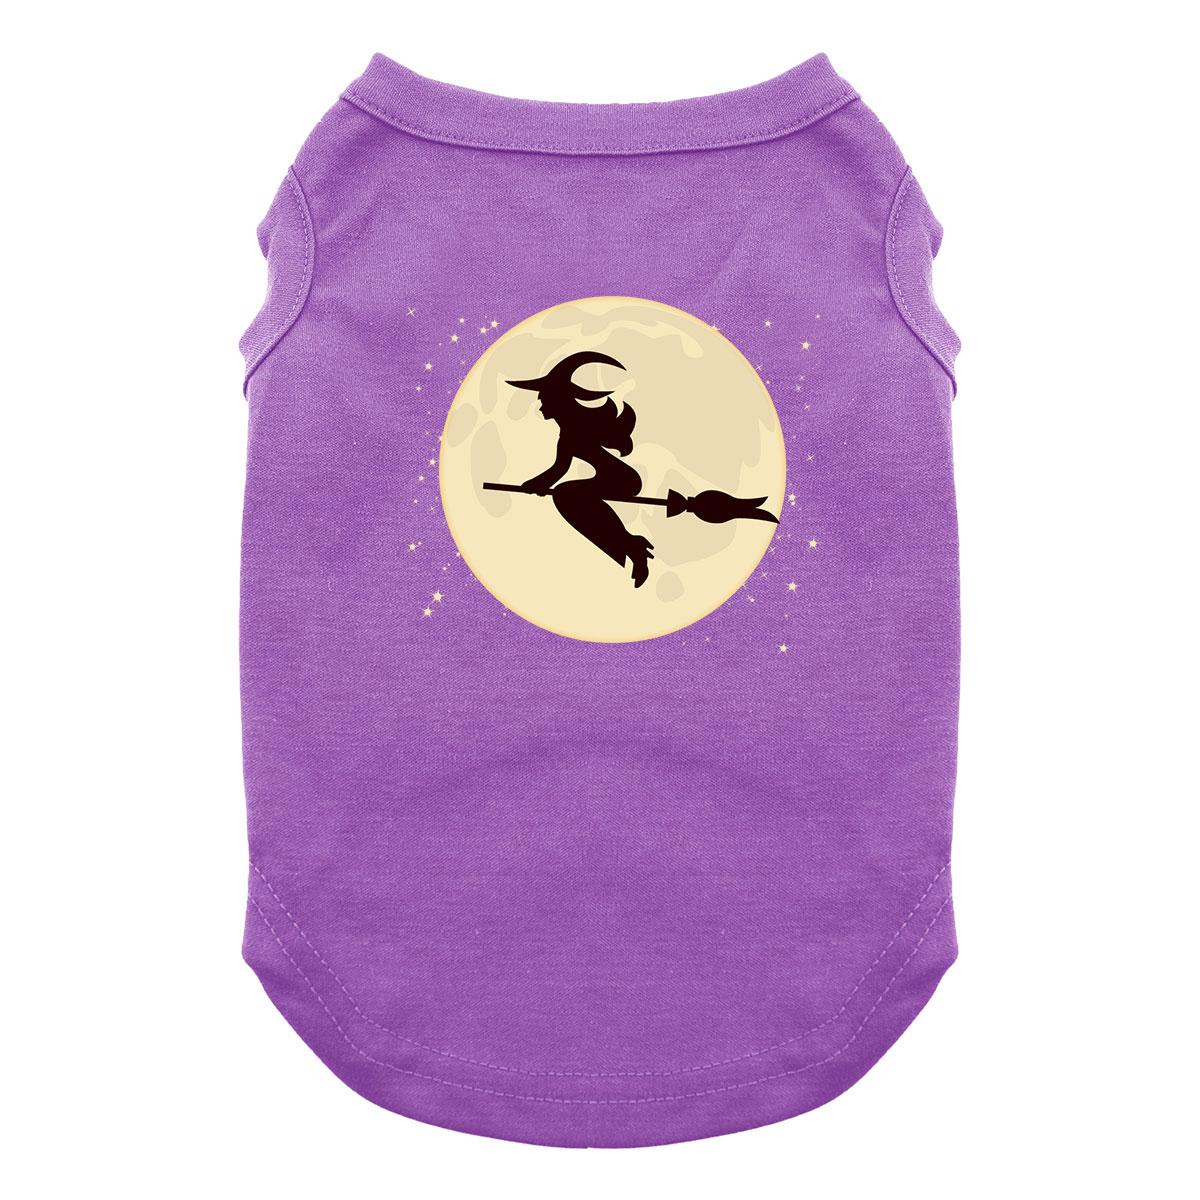 Moonlight Witch on a Broom Dog Shirt - Purple